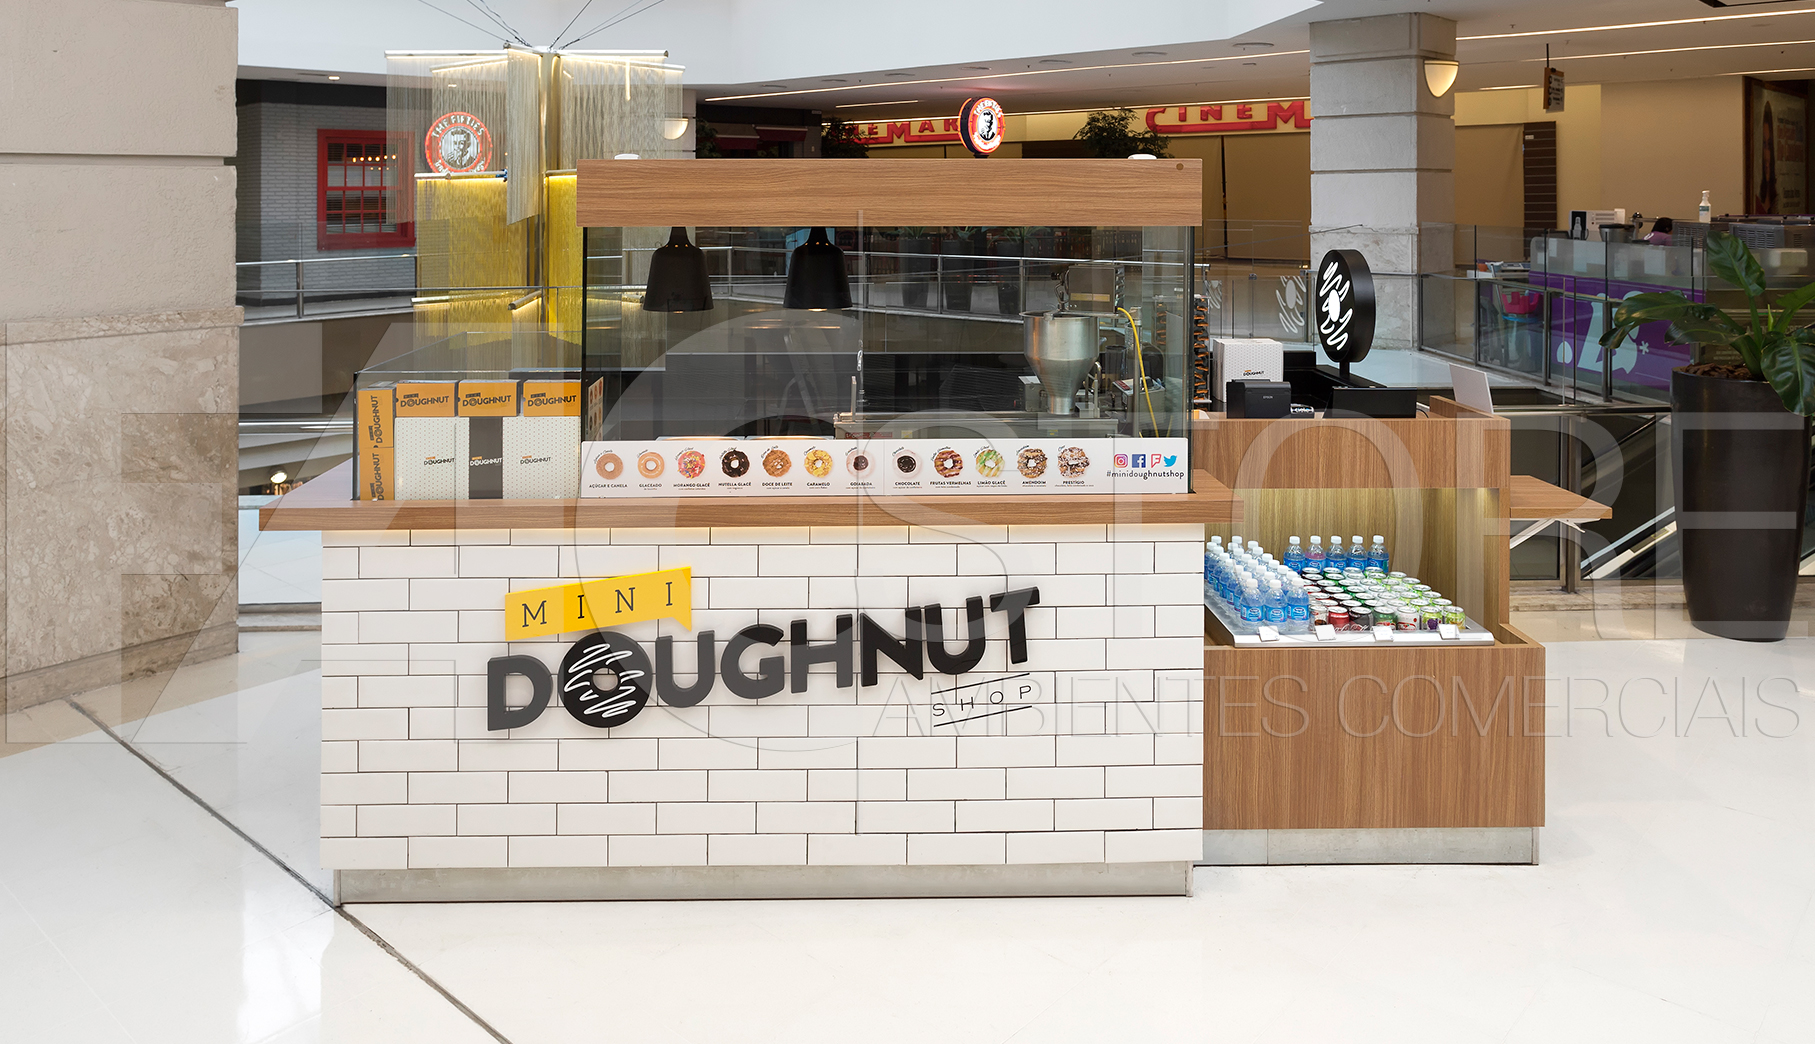 Quiosque para Shopping Mini Doughnut